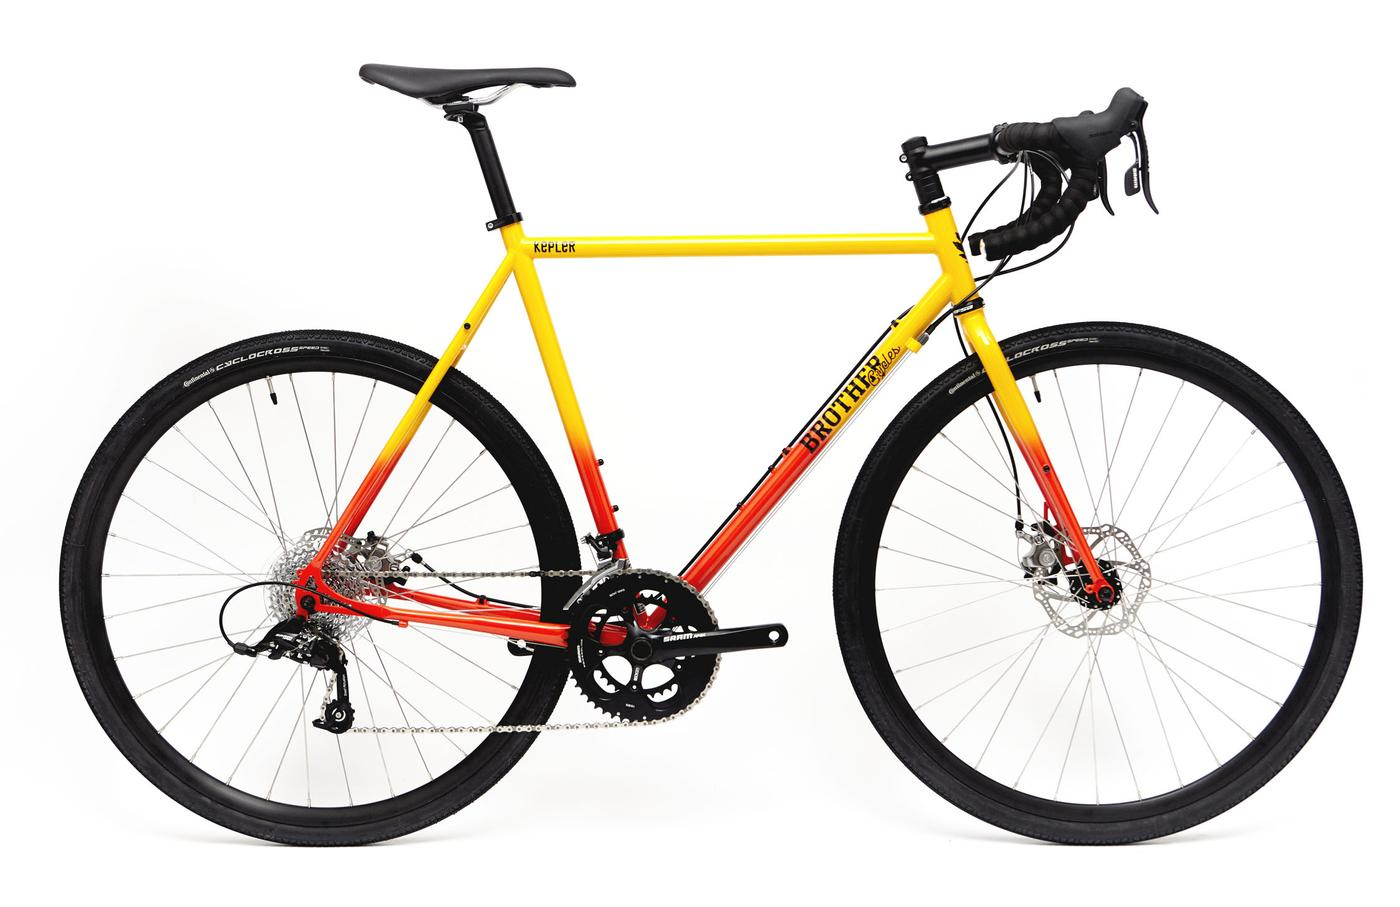 Brother Cycles Kepler Disc Cross